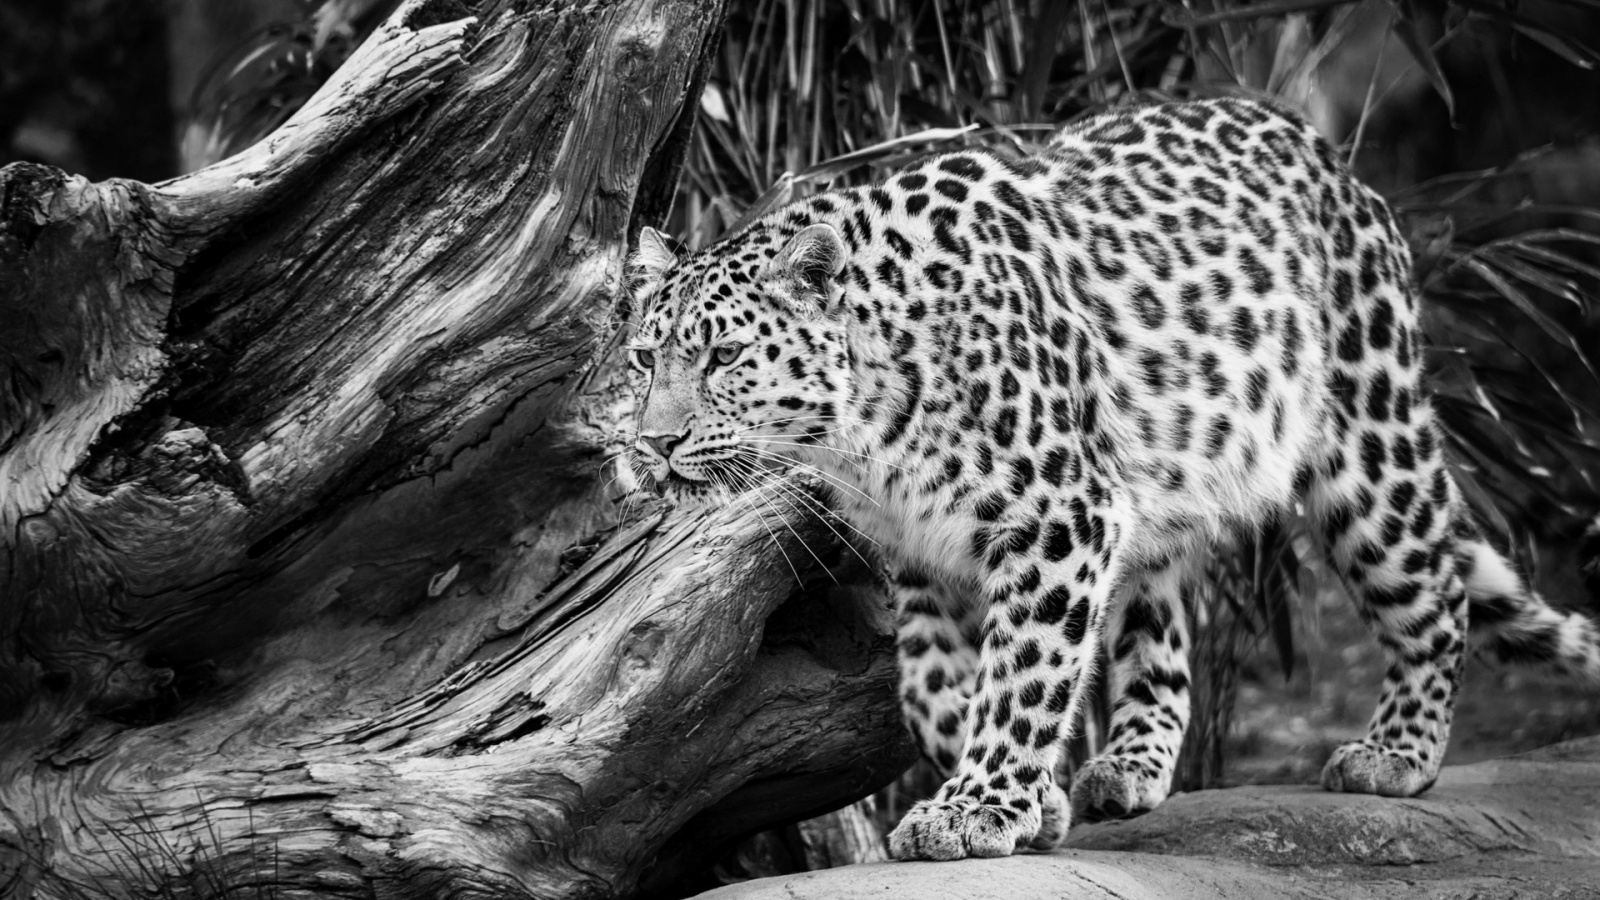 Black And White Wild Leopard | 1600 x 900 | Download | Close: bhmpics.com/view-black_and_white_wild_leopard-1600x900.html